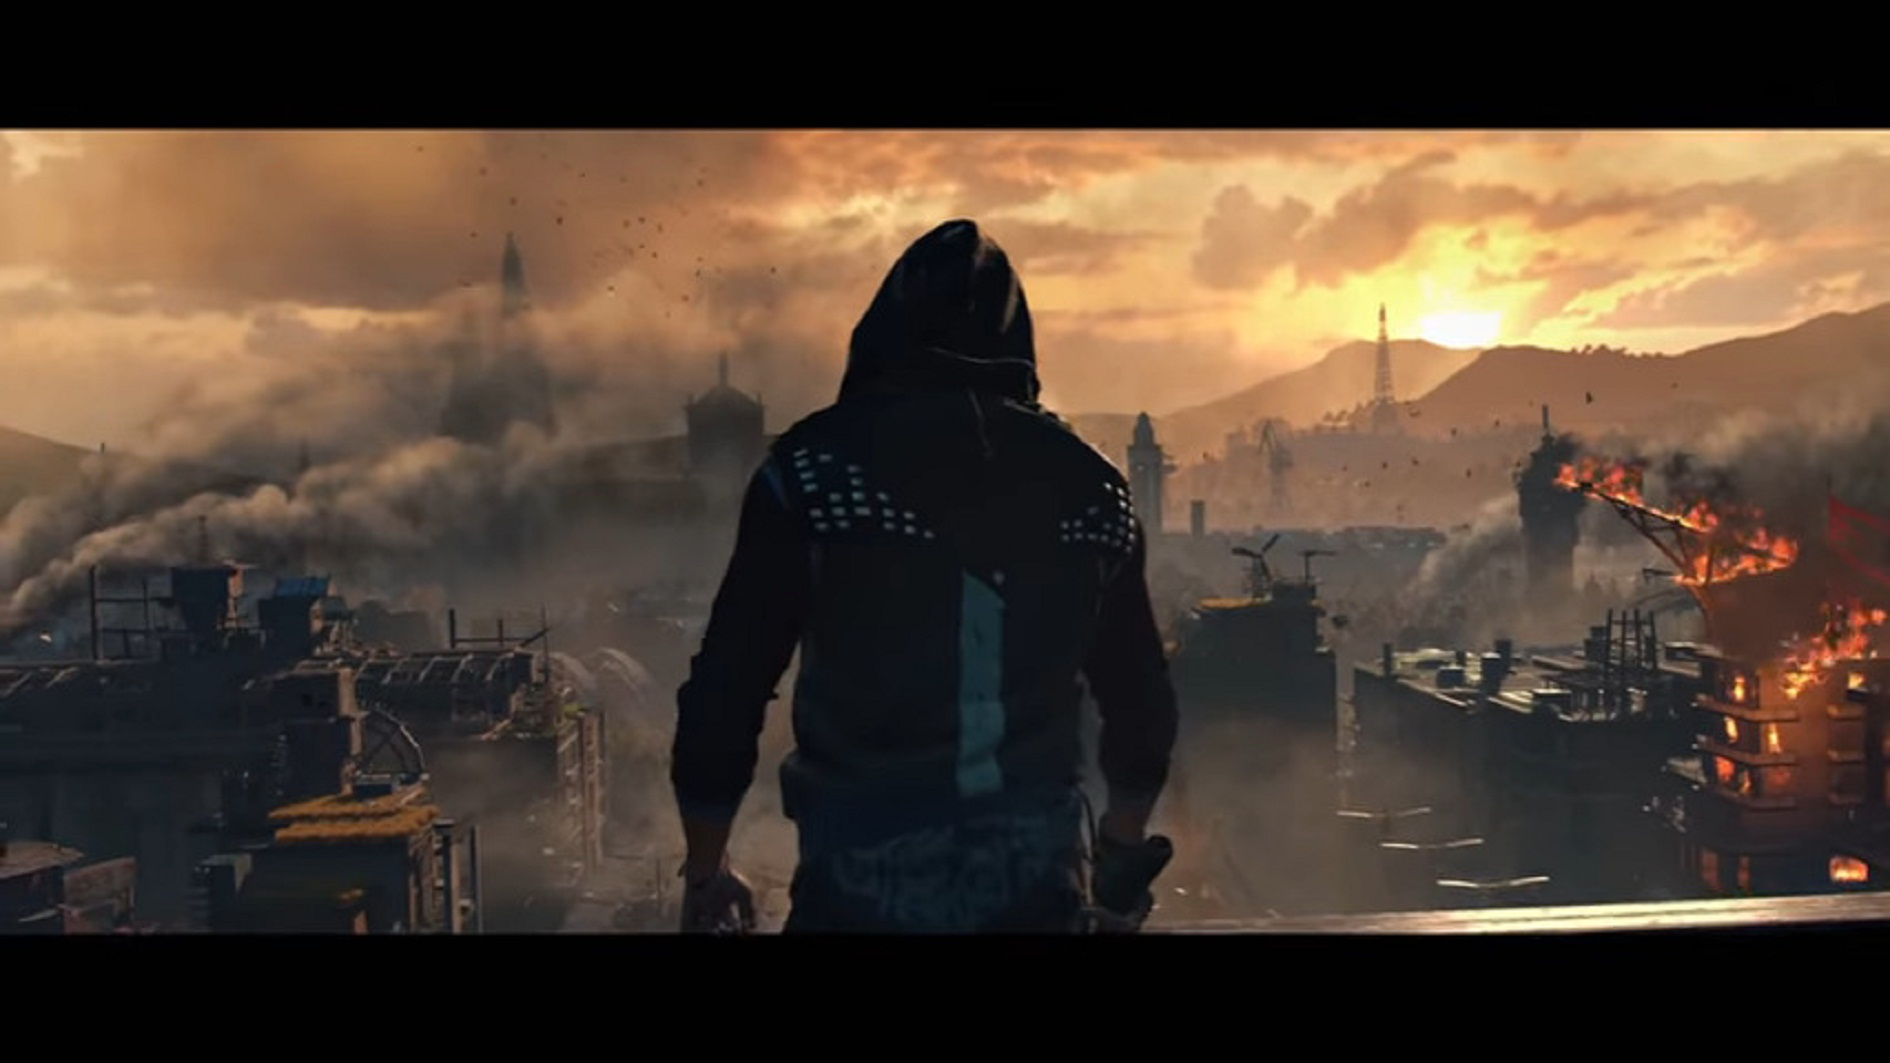 Dying Light 2 Has Been Delayed Indefinitely As Stated From The Letter To Players On Their Official Twitter Account